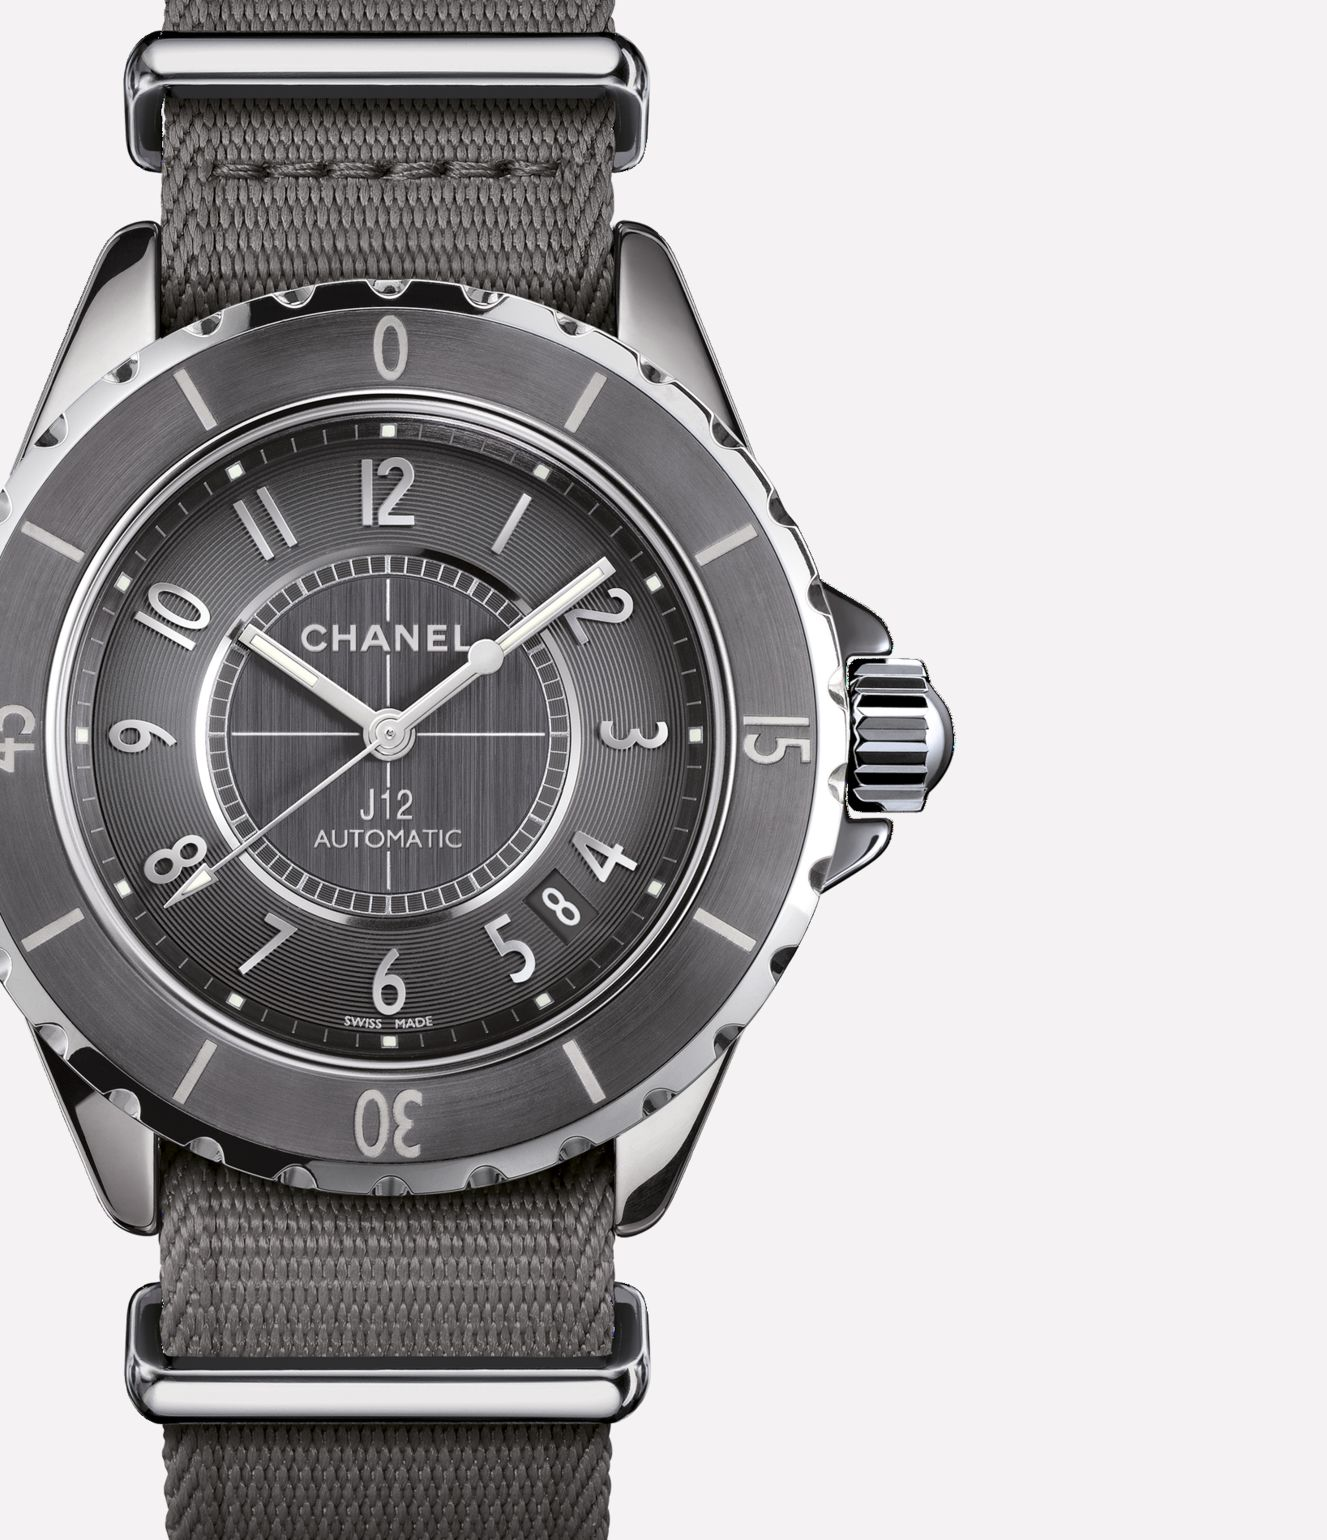 J12-G10 Watch Titanium ceramic and steel, gray alligator and nylon straps